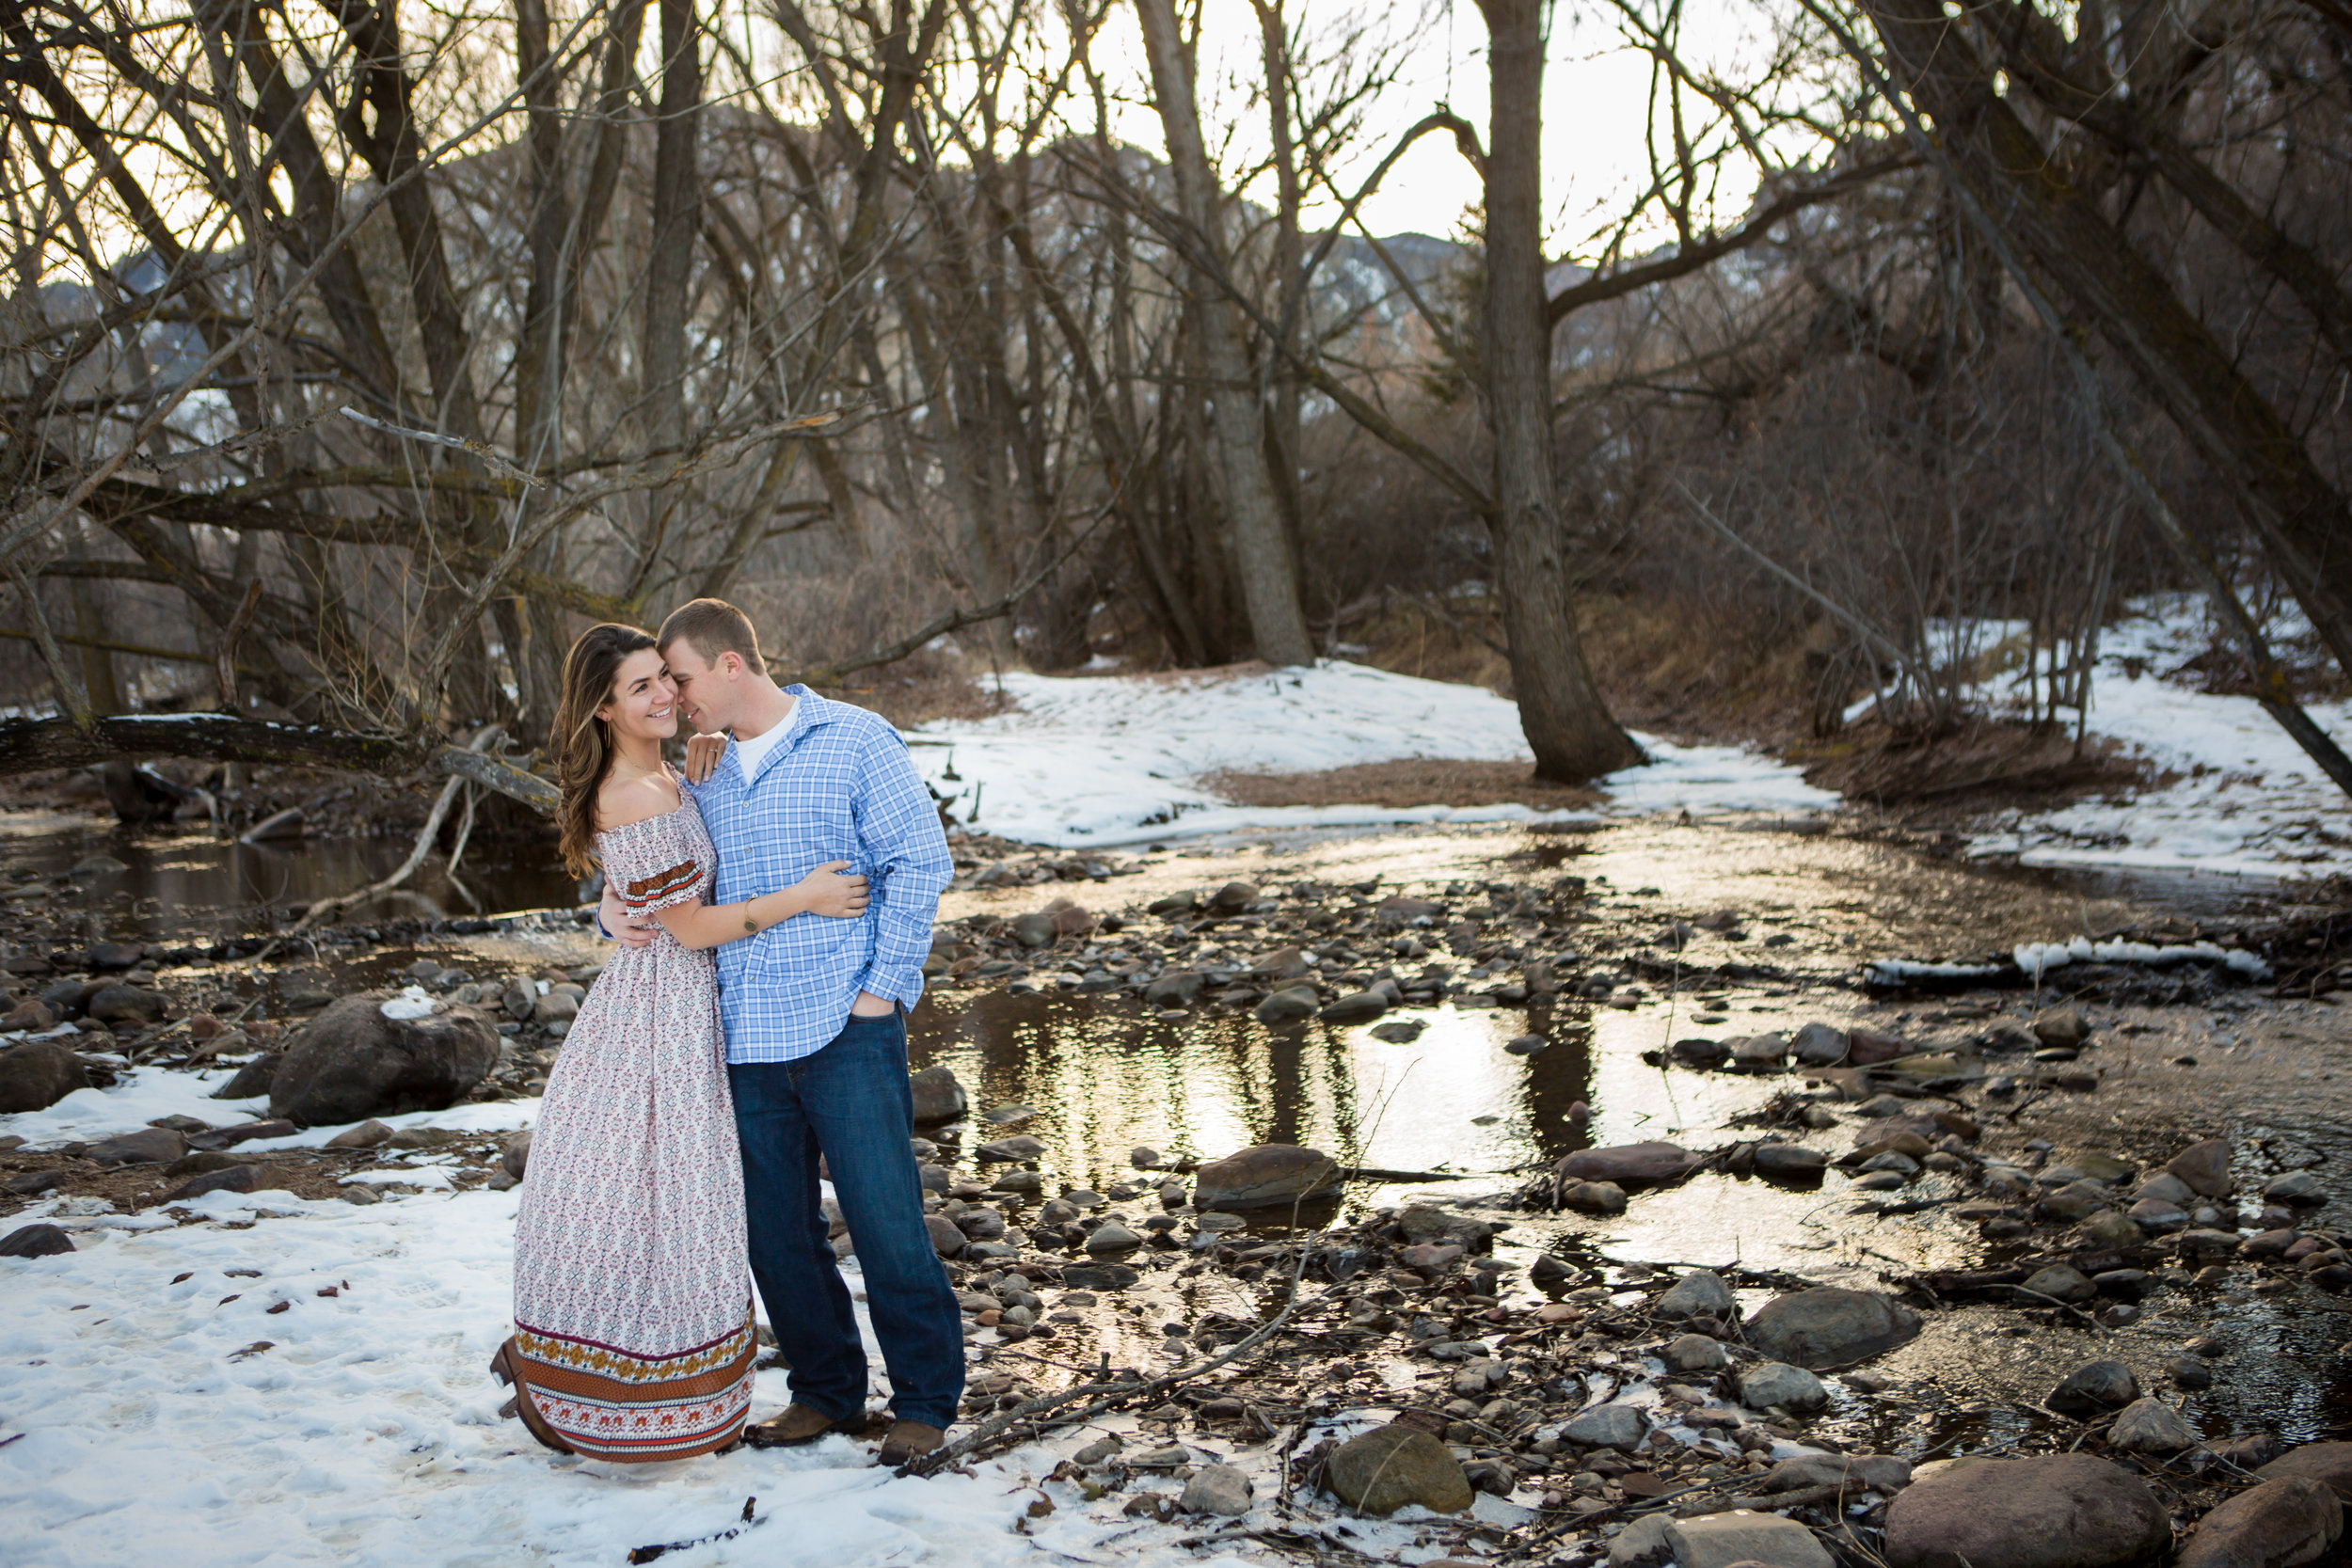 Nick&JessEngagement-60.jpg